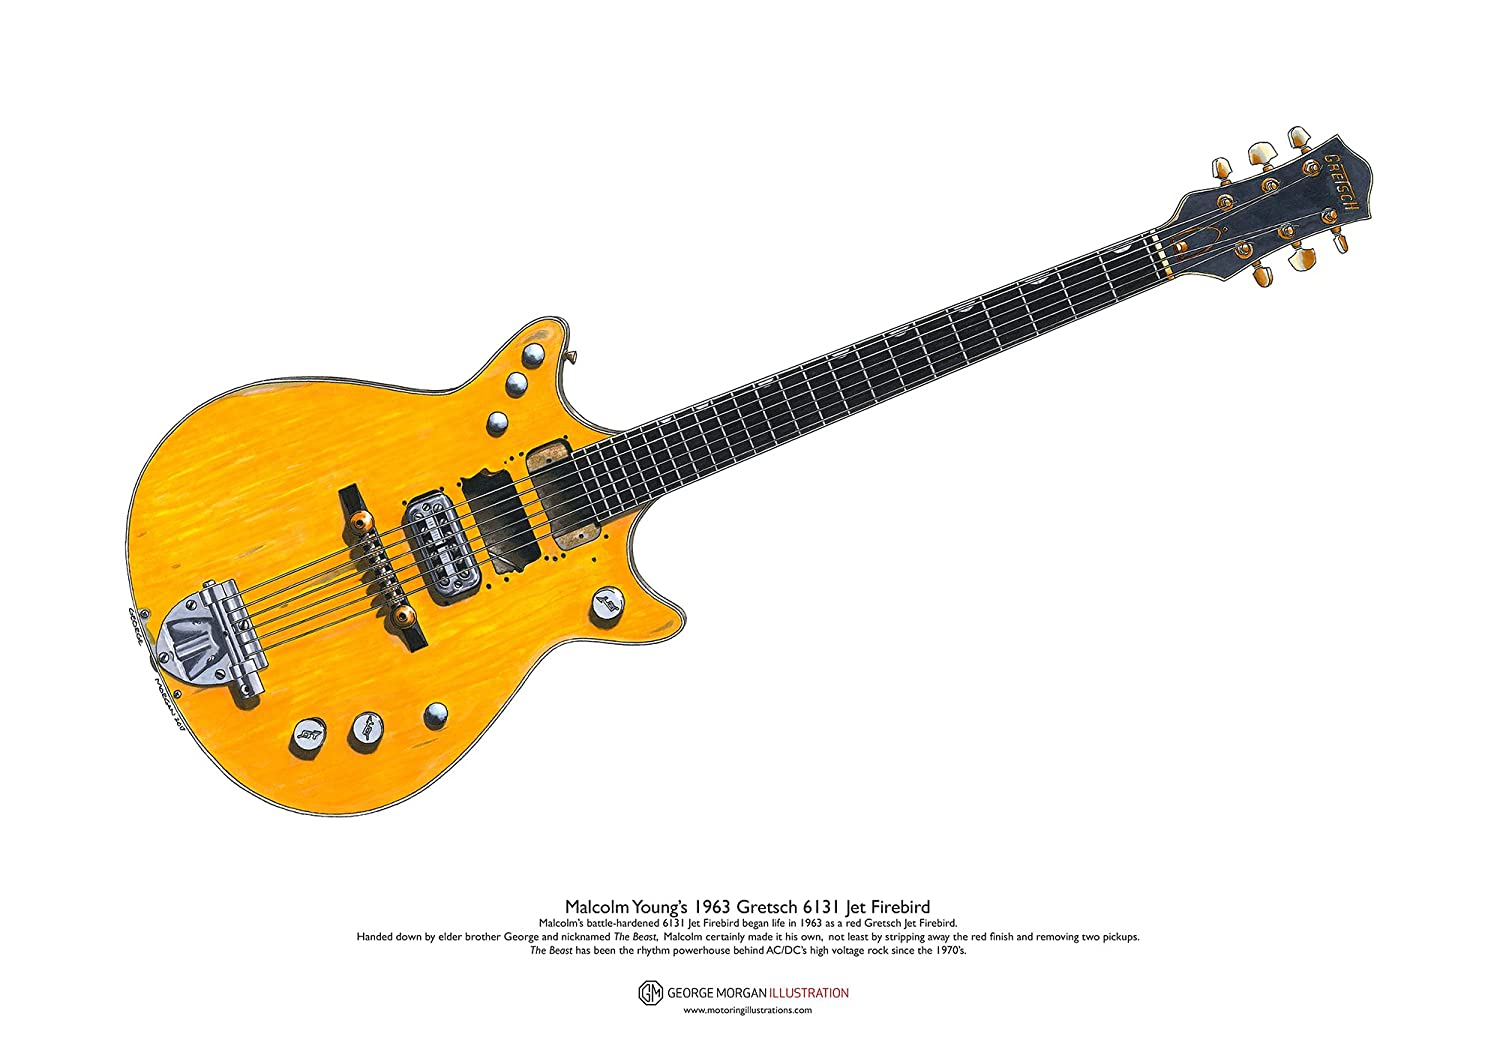 George Morgan Illustration Arte Cartel 1963 Gretsch 6131 Jet ...